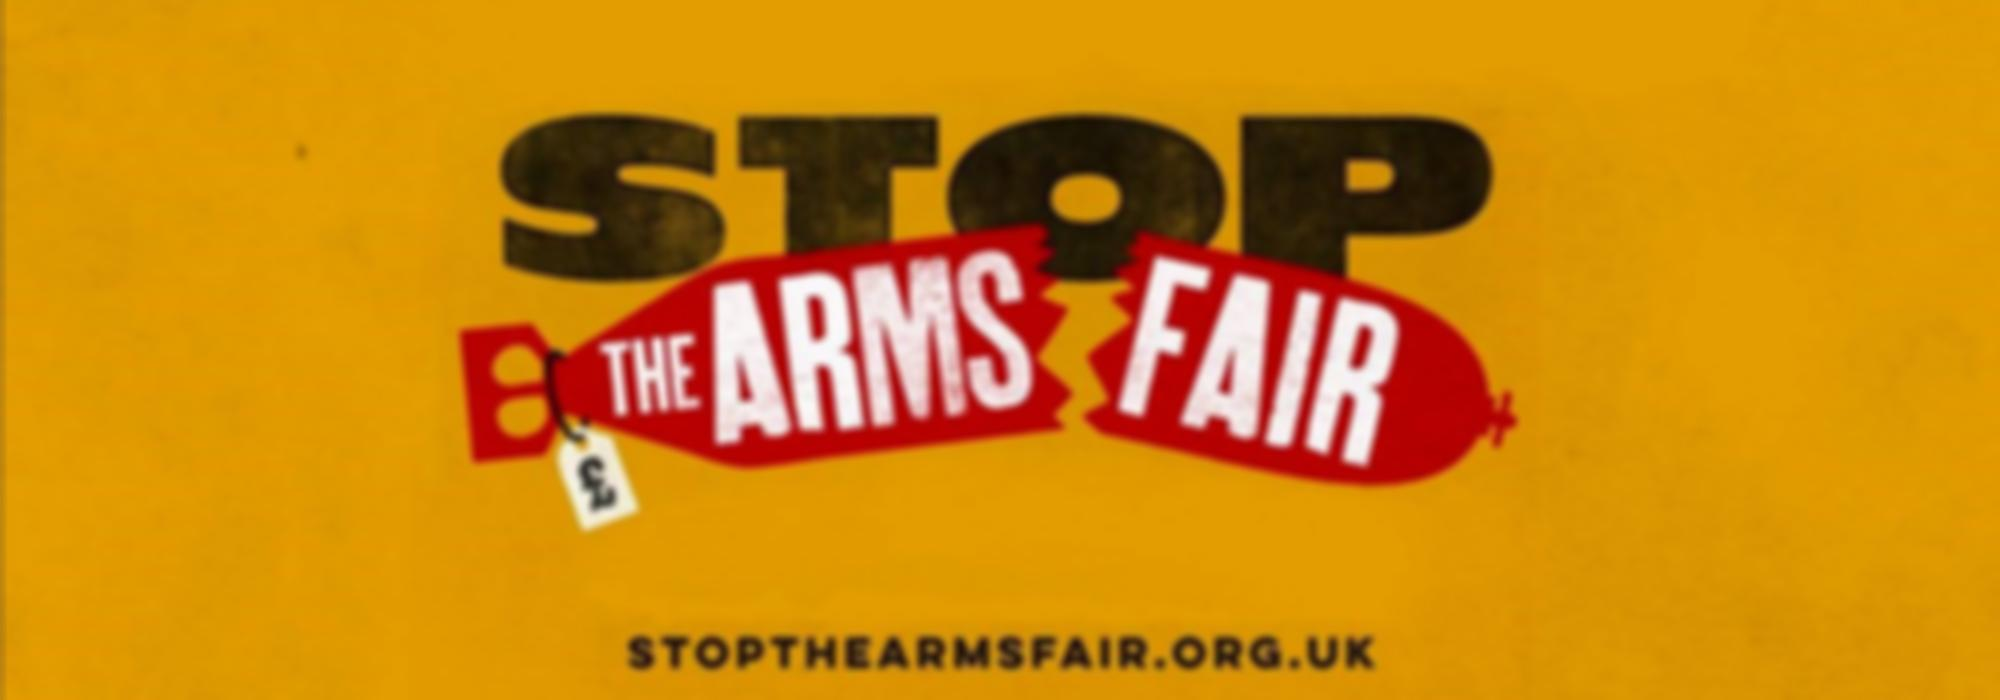 Het logo van de 'Stop the arms fair' campagne.